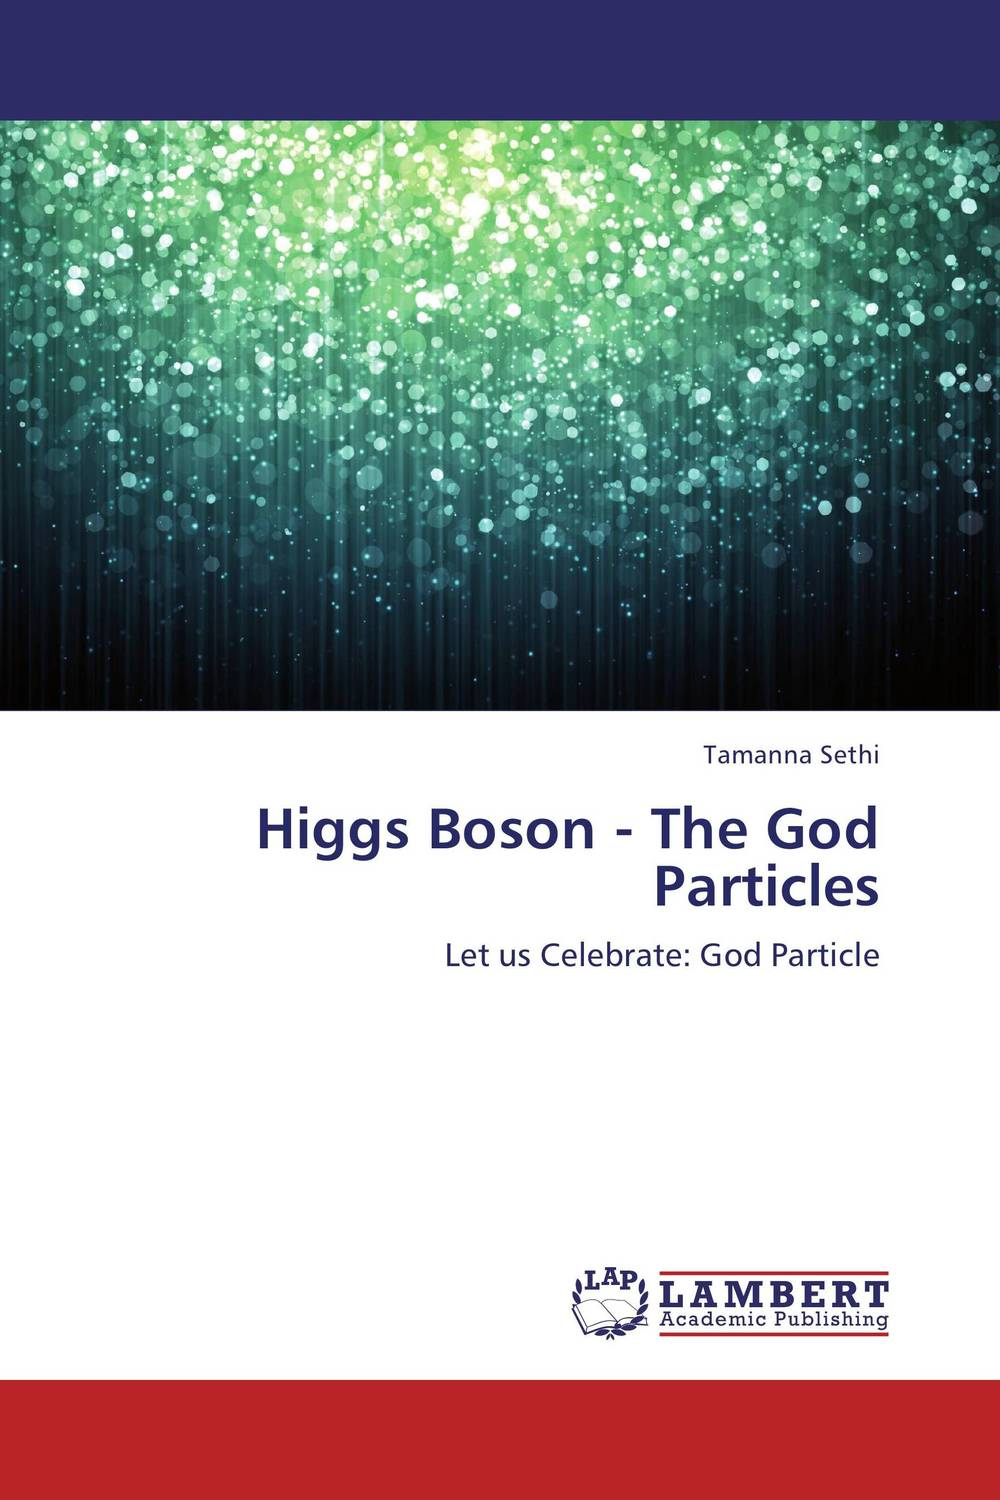 Higgs Boson - The God Particles fundamentals of physics extended 9th edition international student version with wileyplus set